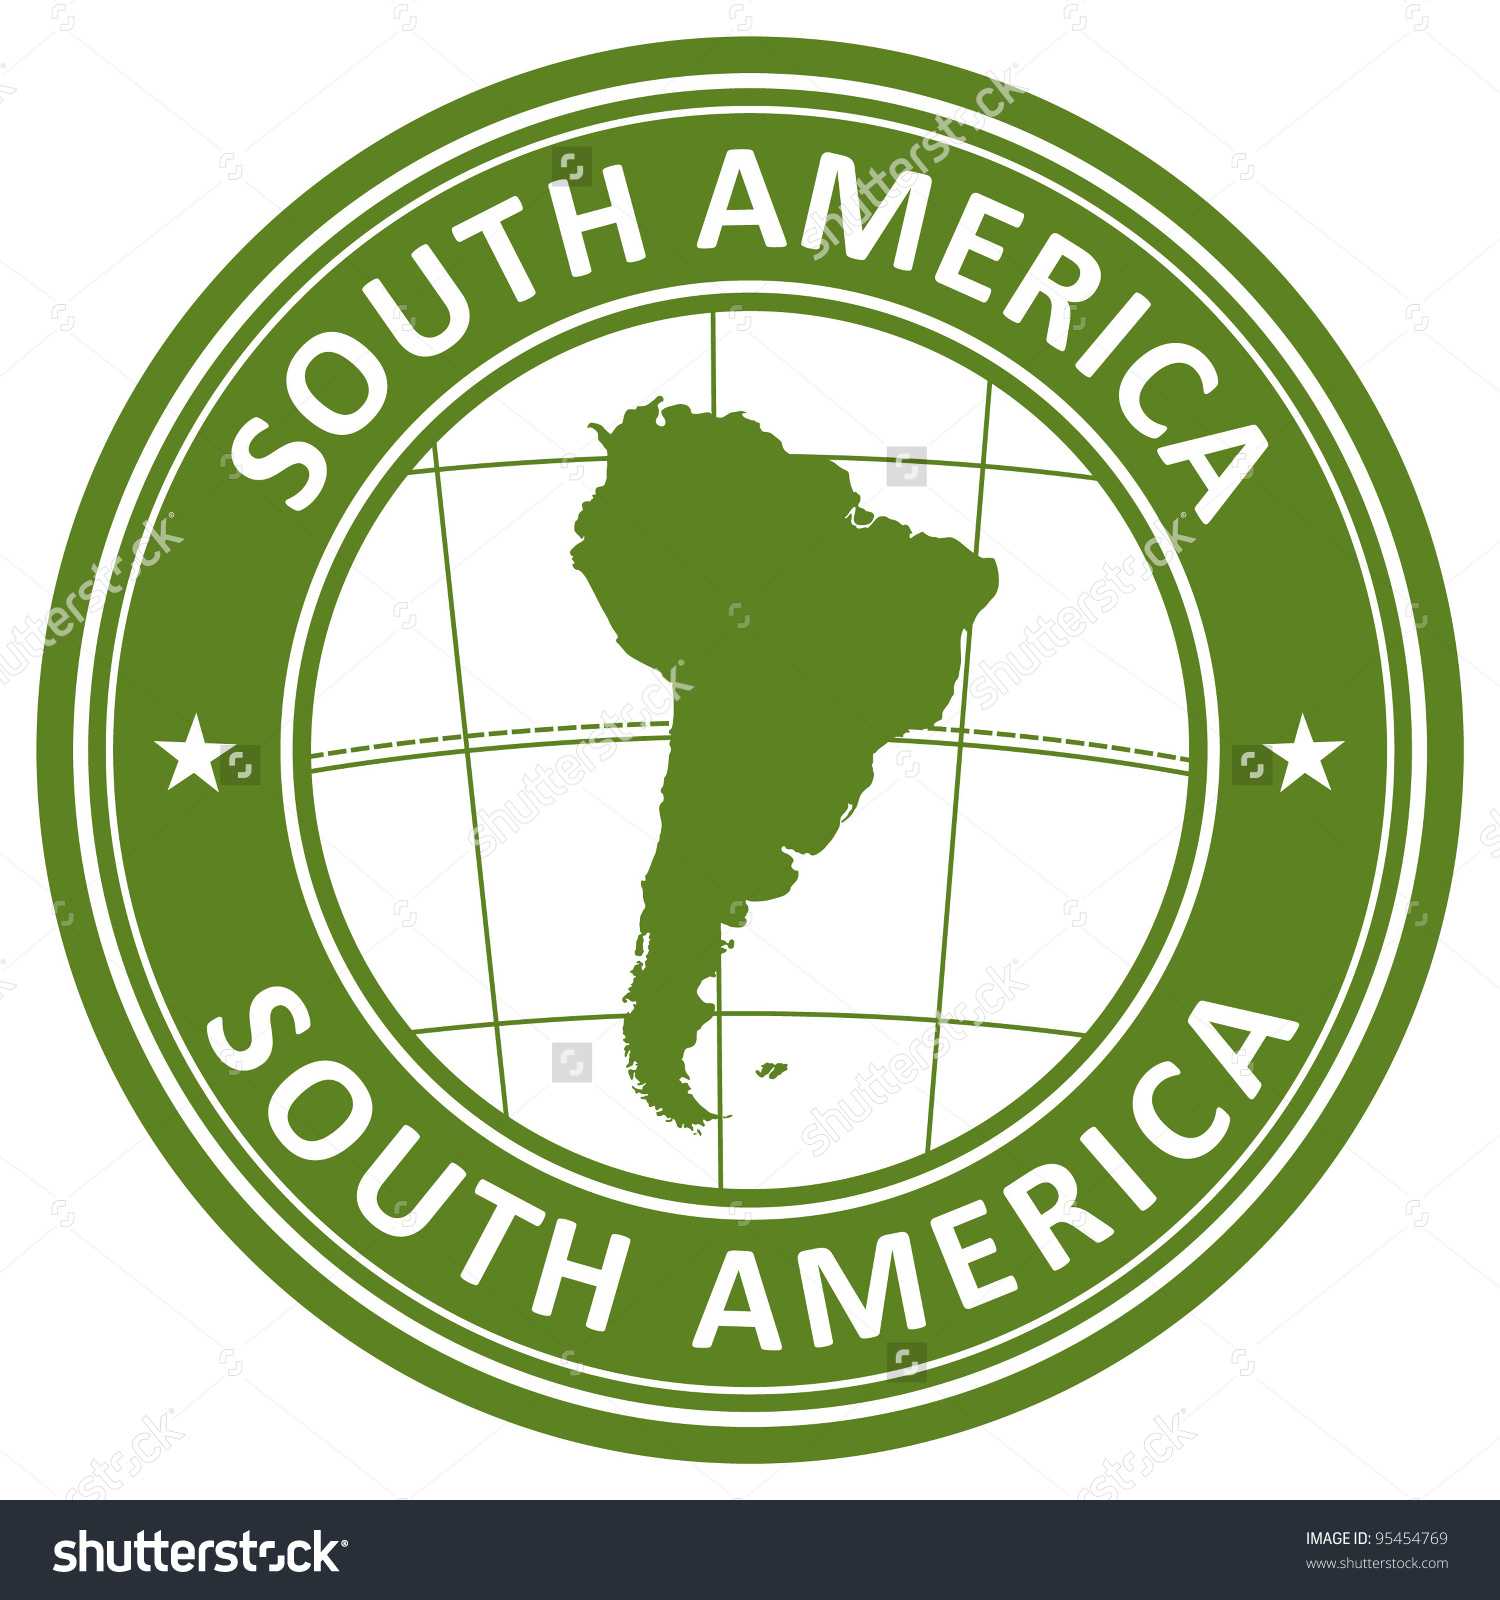 South America clipart #7, Download drawings